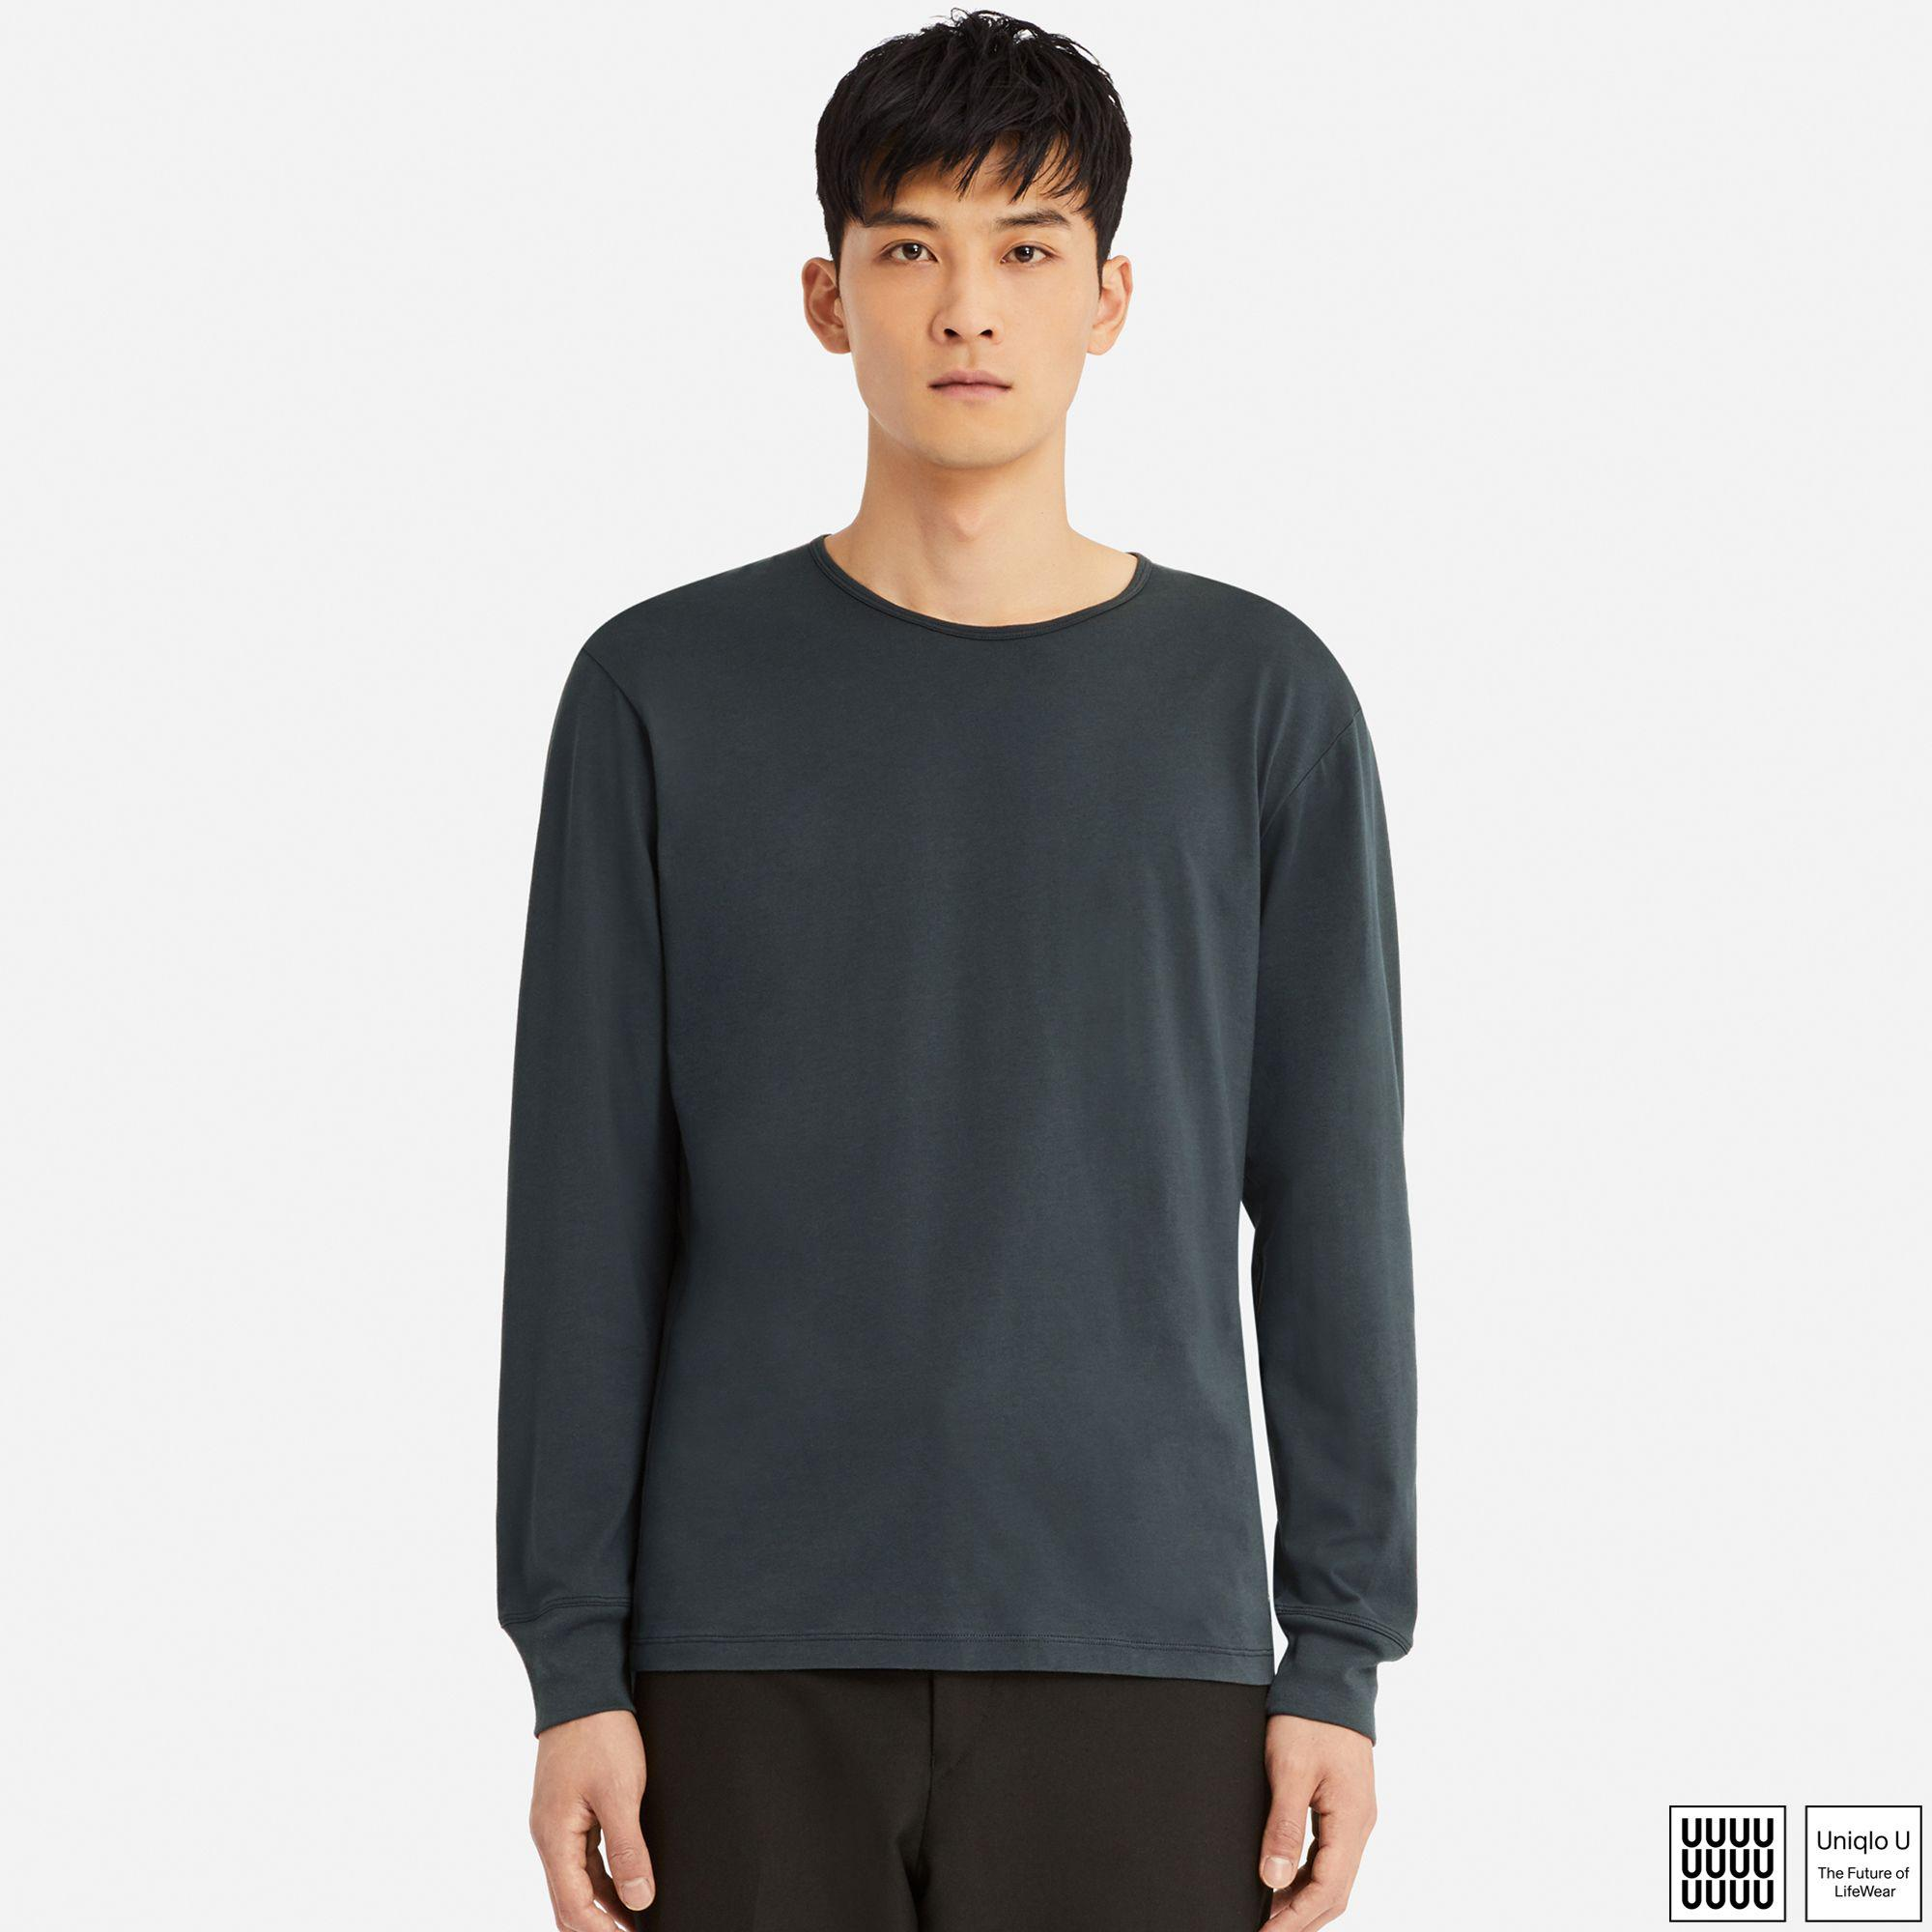 3d4a251c717 Uniqlo U Supima Cotton Crew Neck Long Sleeved T-shirt in Gray for ...